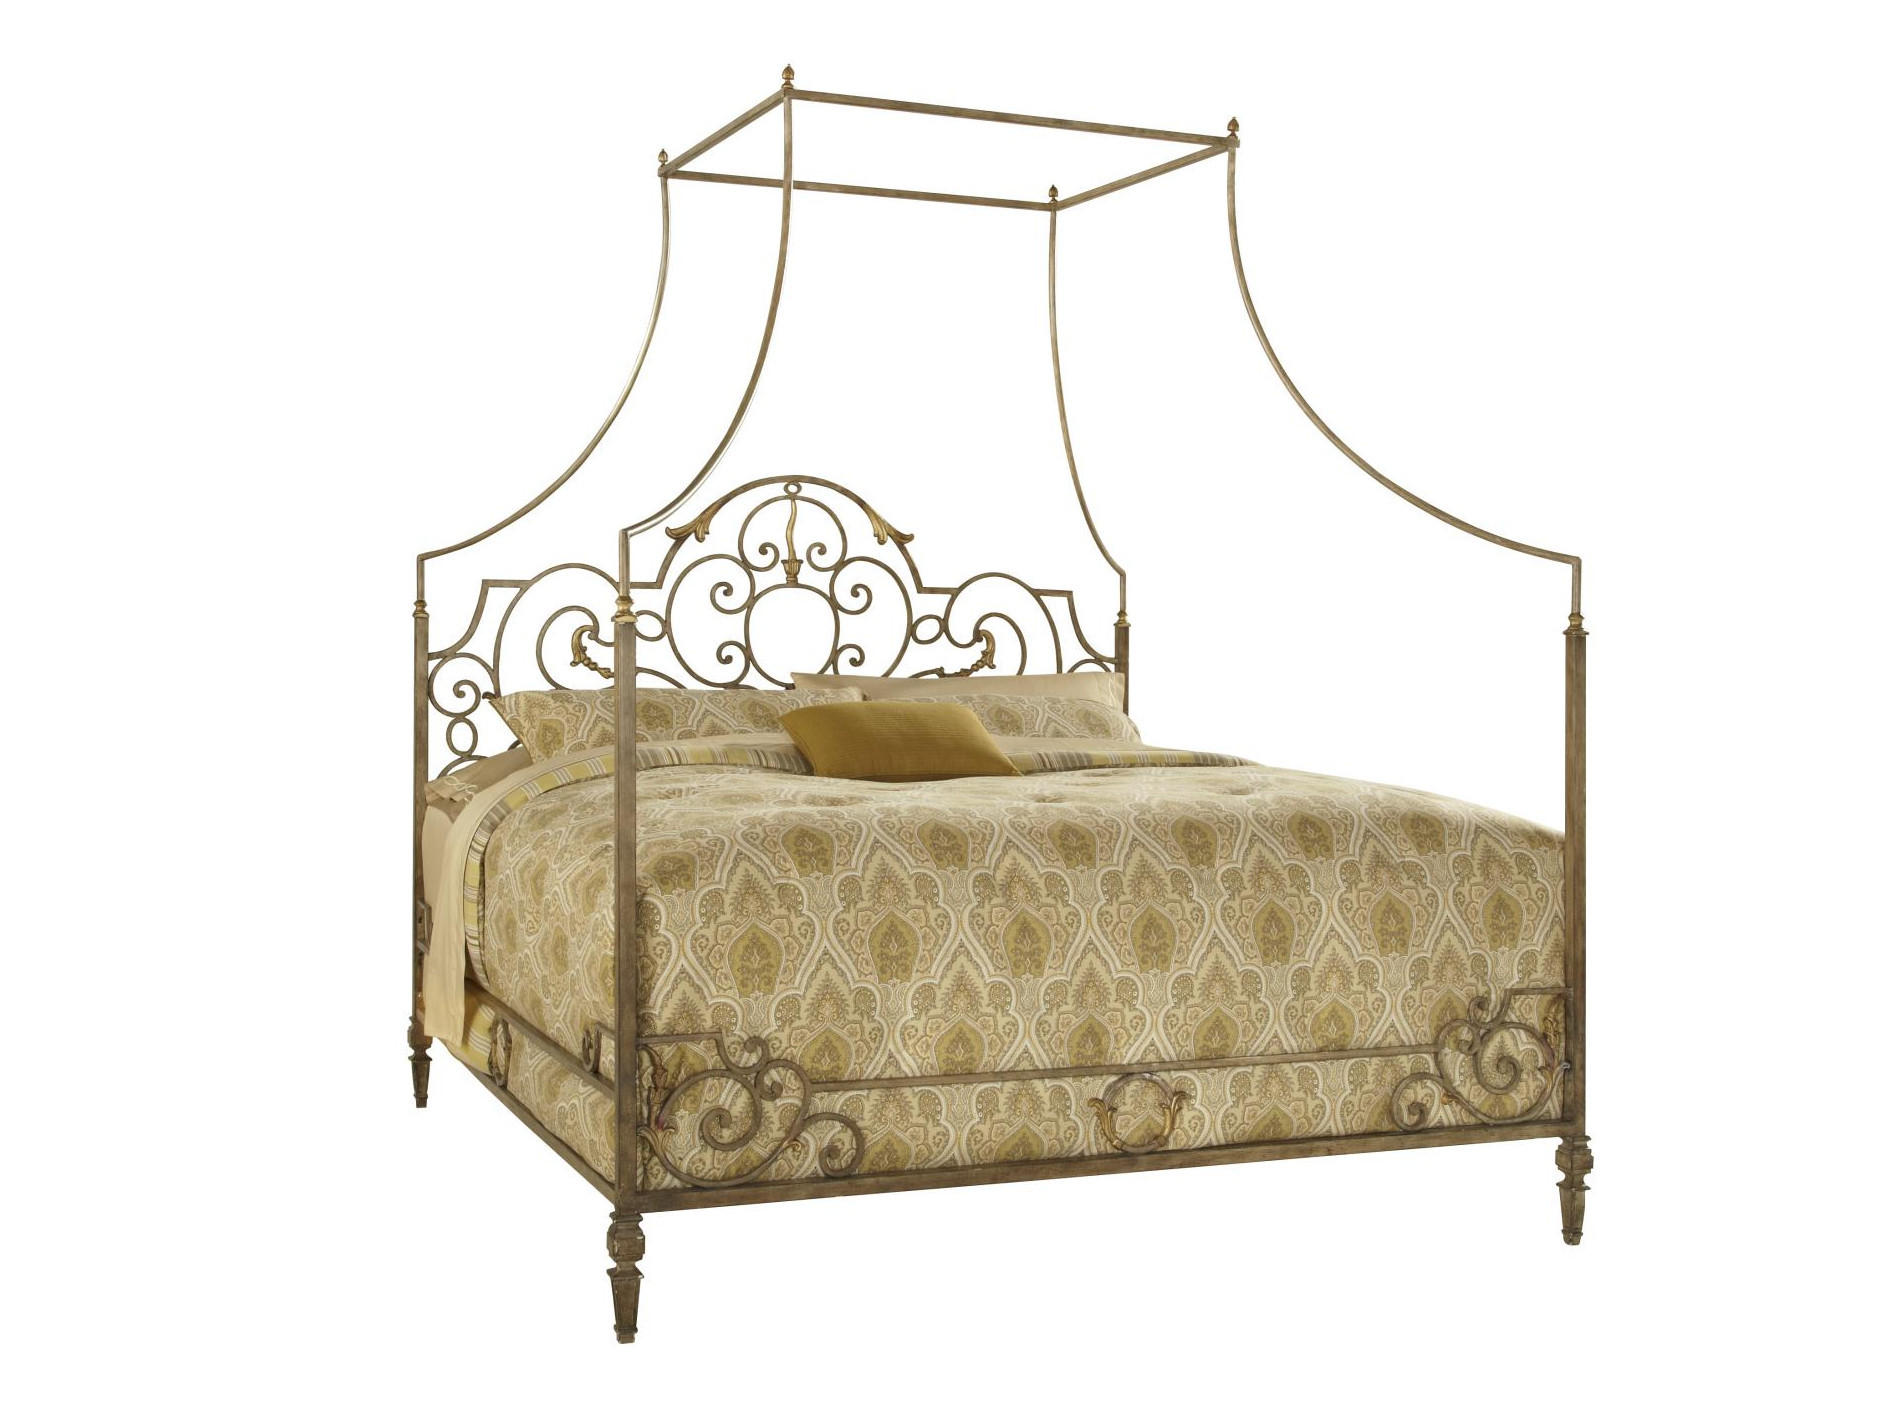 Biltmore King Metal Canopy Bed By Ffd From Knight Furniture